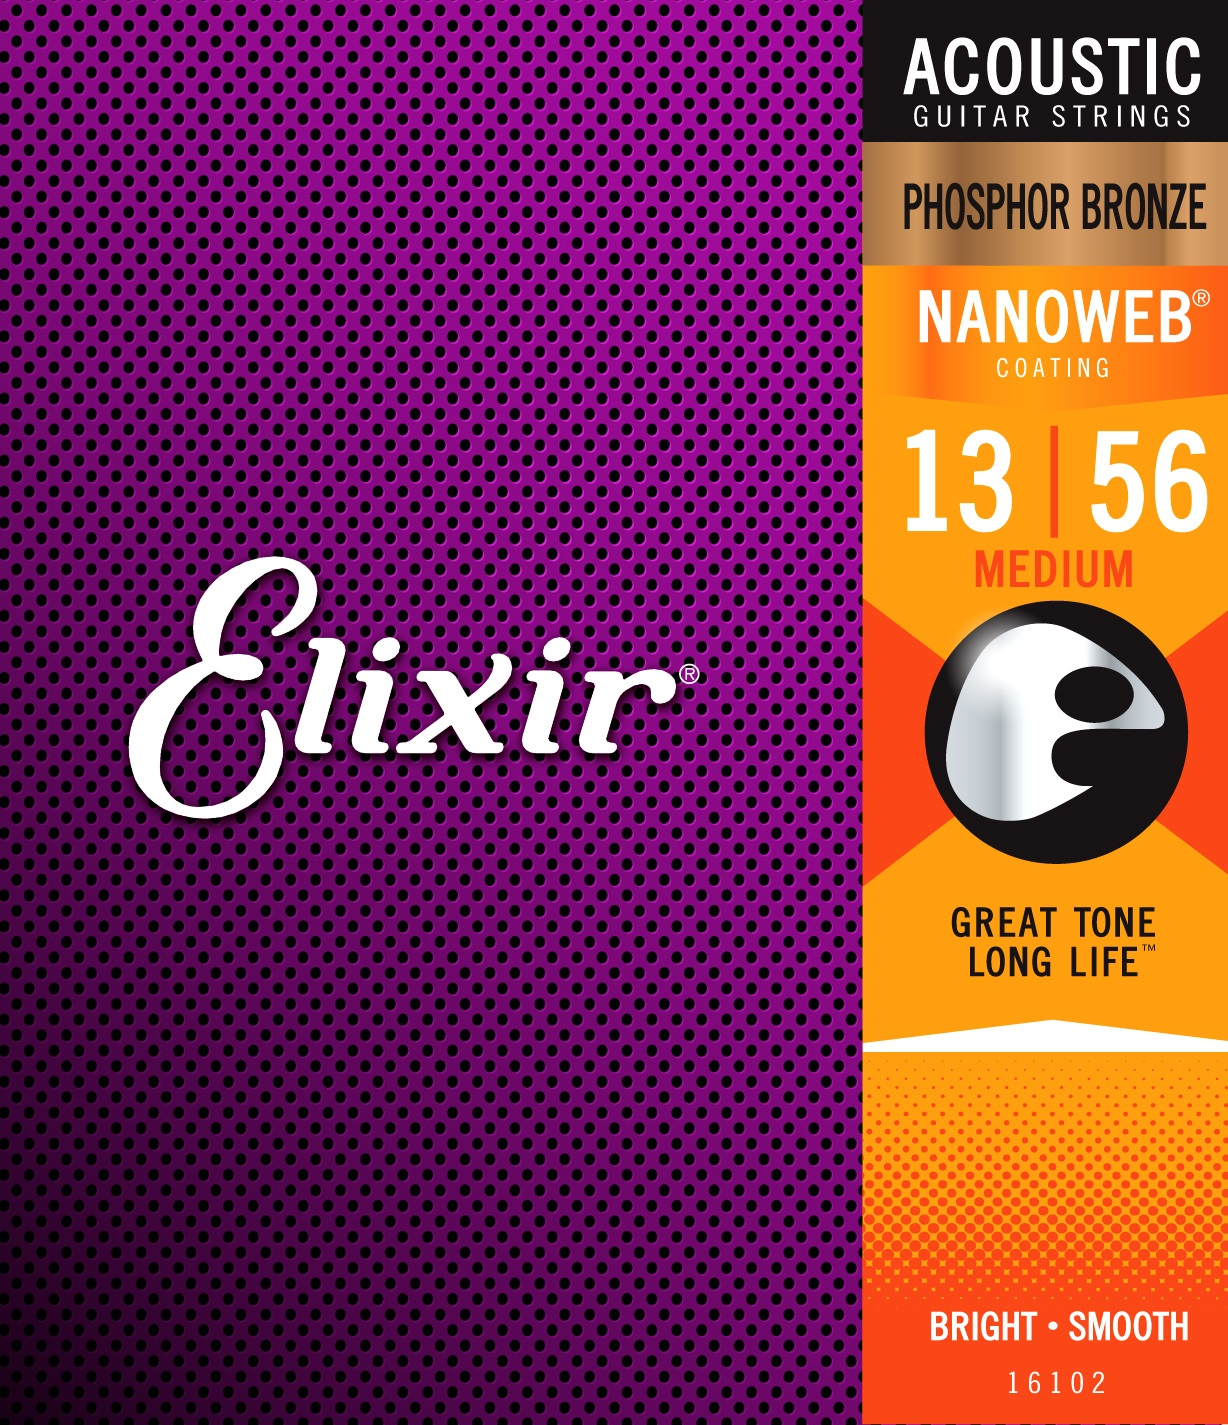 Elixir Nanoweb Phosphor Bronze Medium